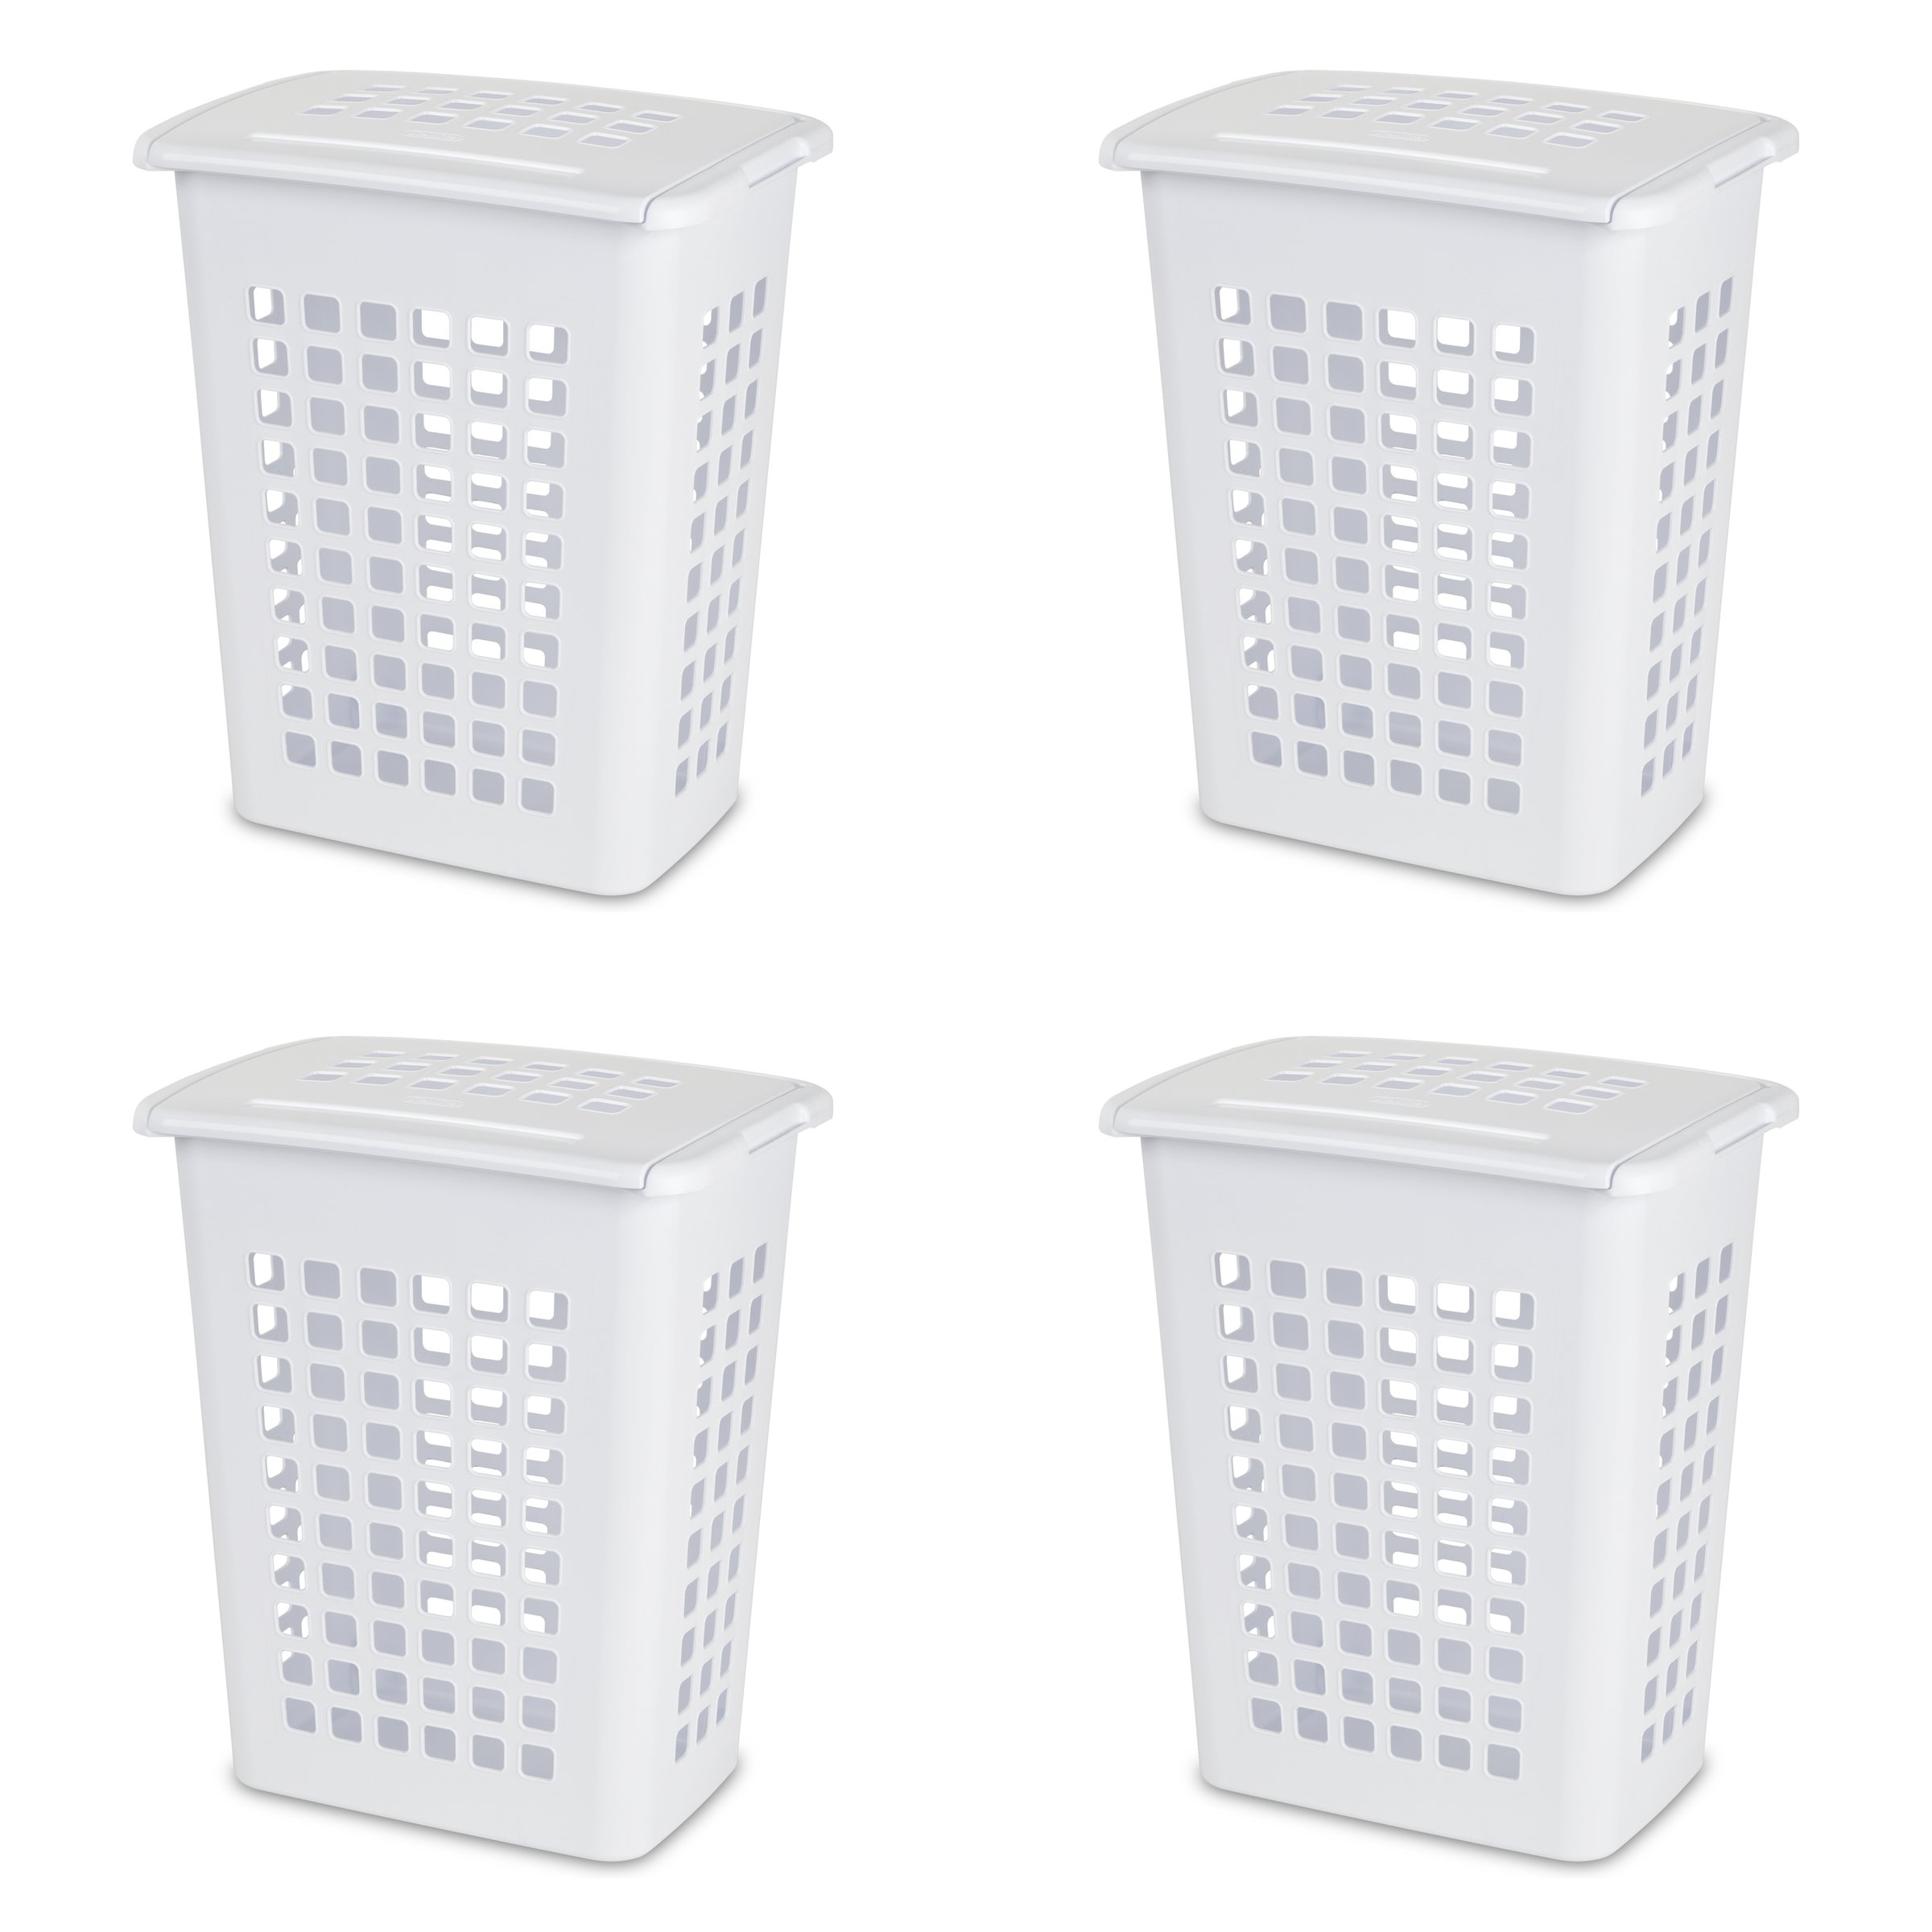 Sterilite 12238004 Rectangular LiftTop Laundry Hamper, White, 4-Pack by STERILITE